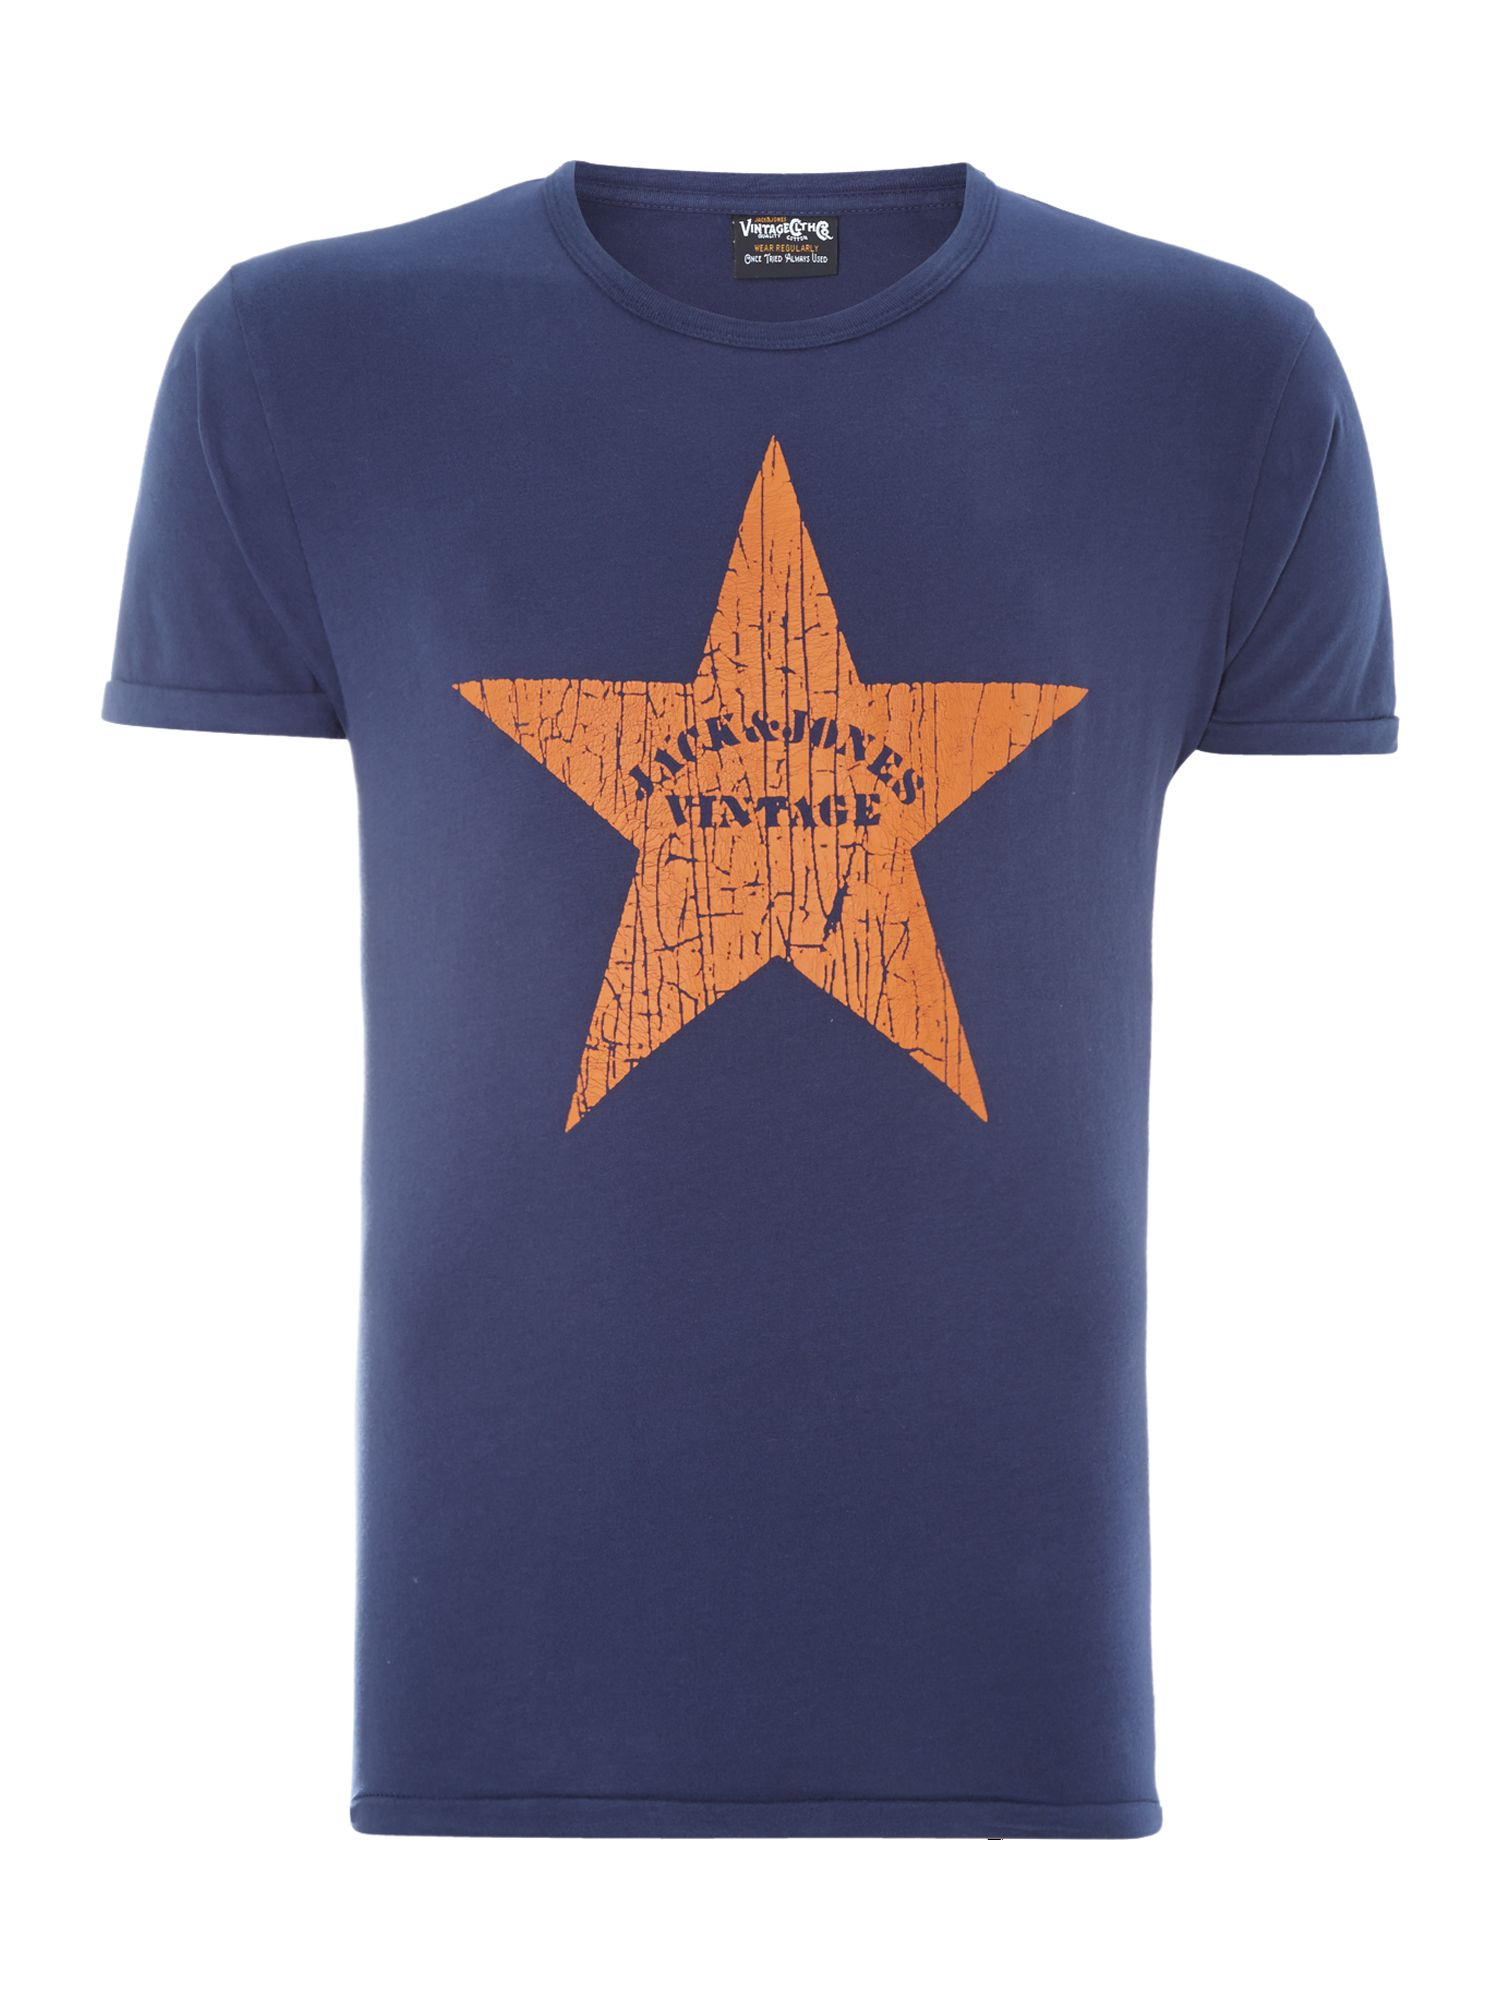 Cracked star print t-shirt